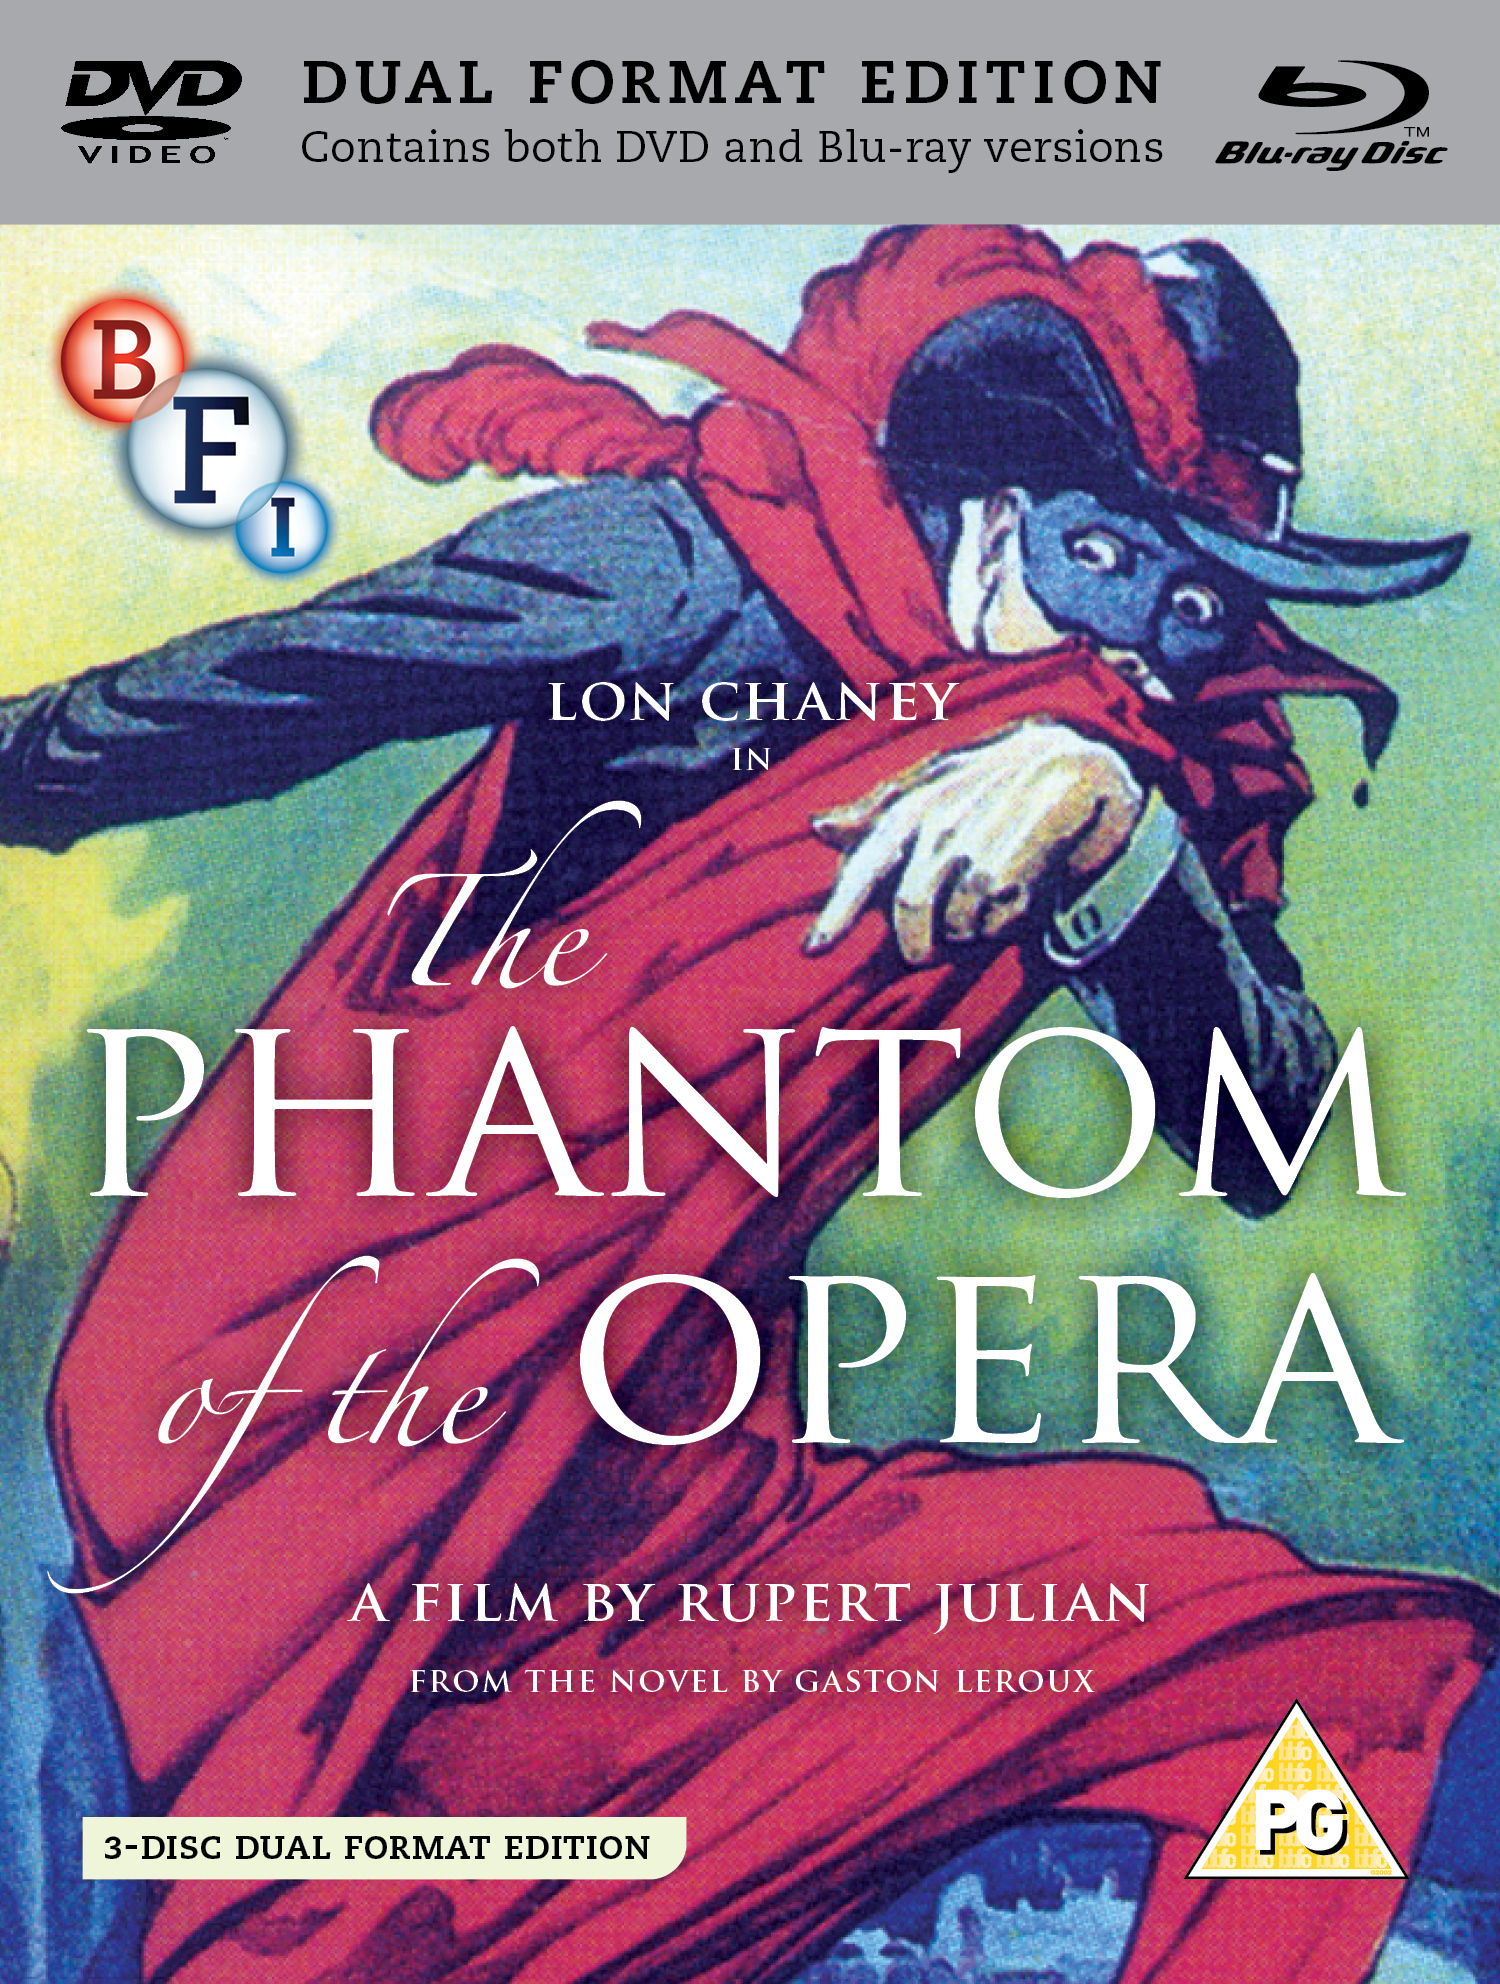 Buy The Phantom of the Opera on DVD and Blu Ray